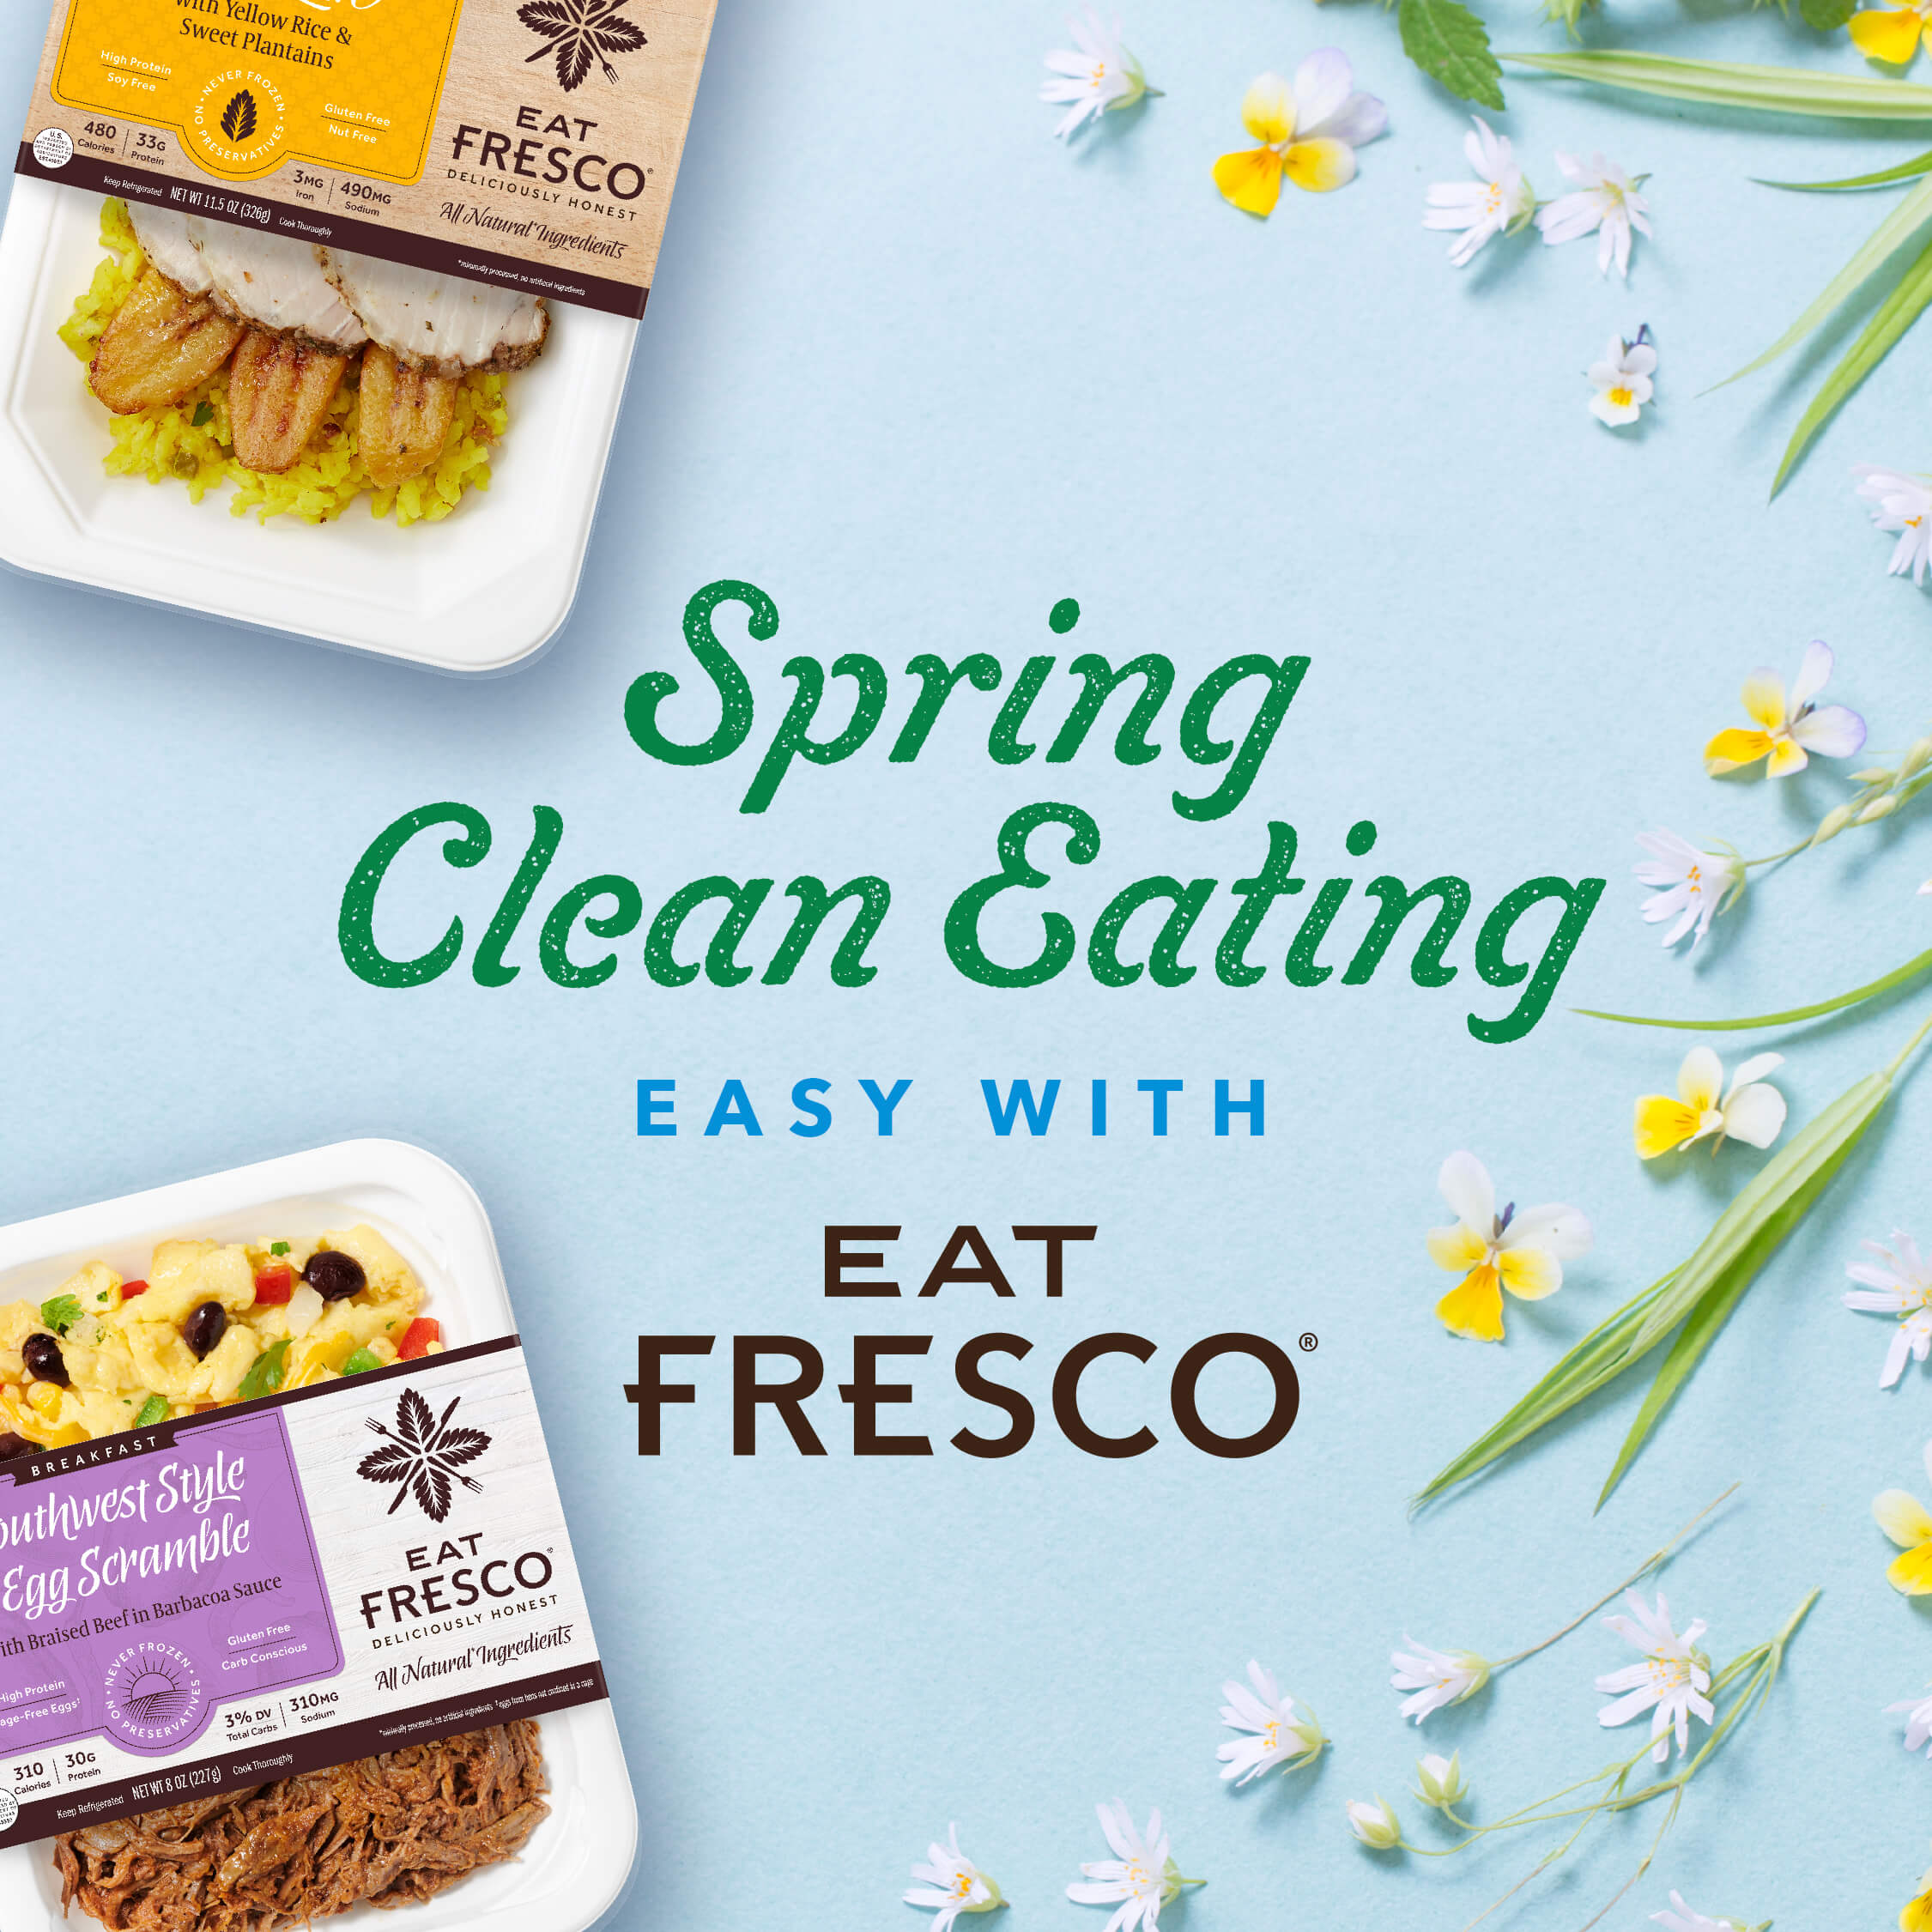 Spring Clean Eating Made Easy With Eat Fresco